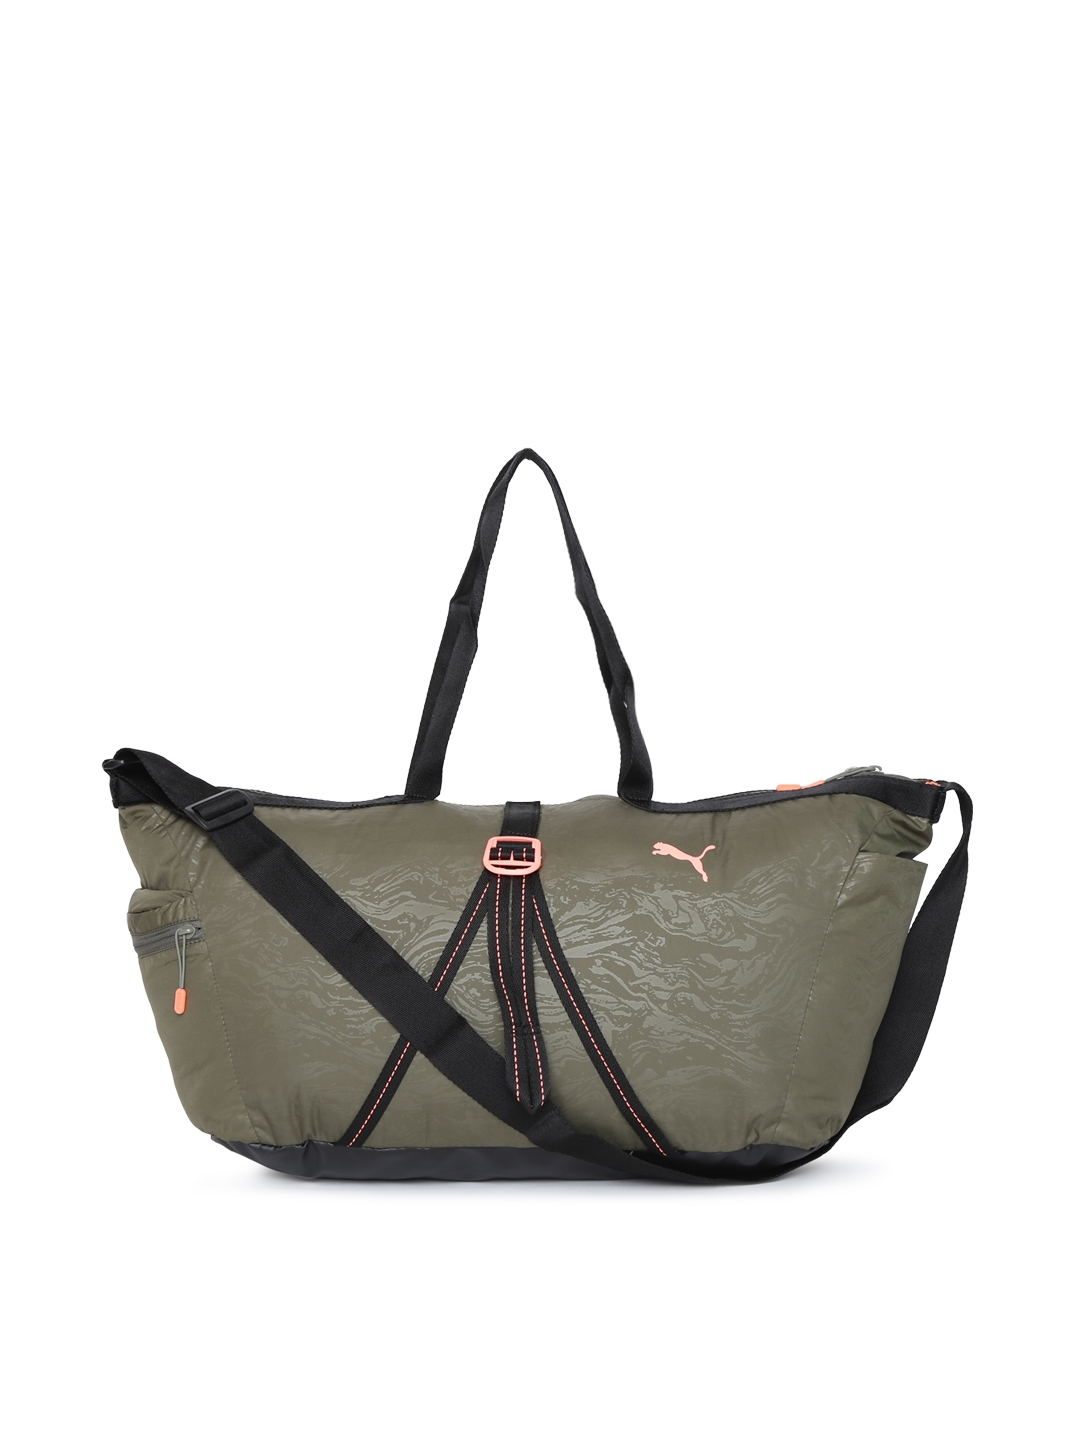 e1d289a7cf Buy Puma Women Olive Green Fit AT Workout Duffel Bag - Duffel Bag ...